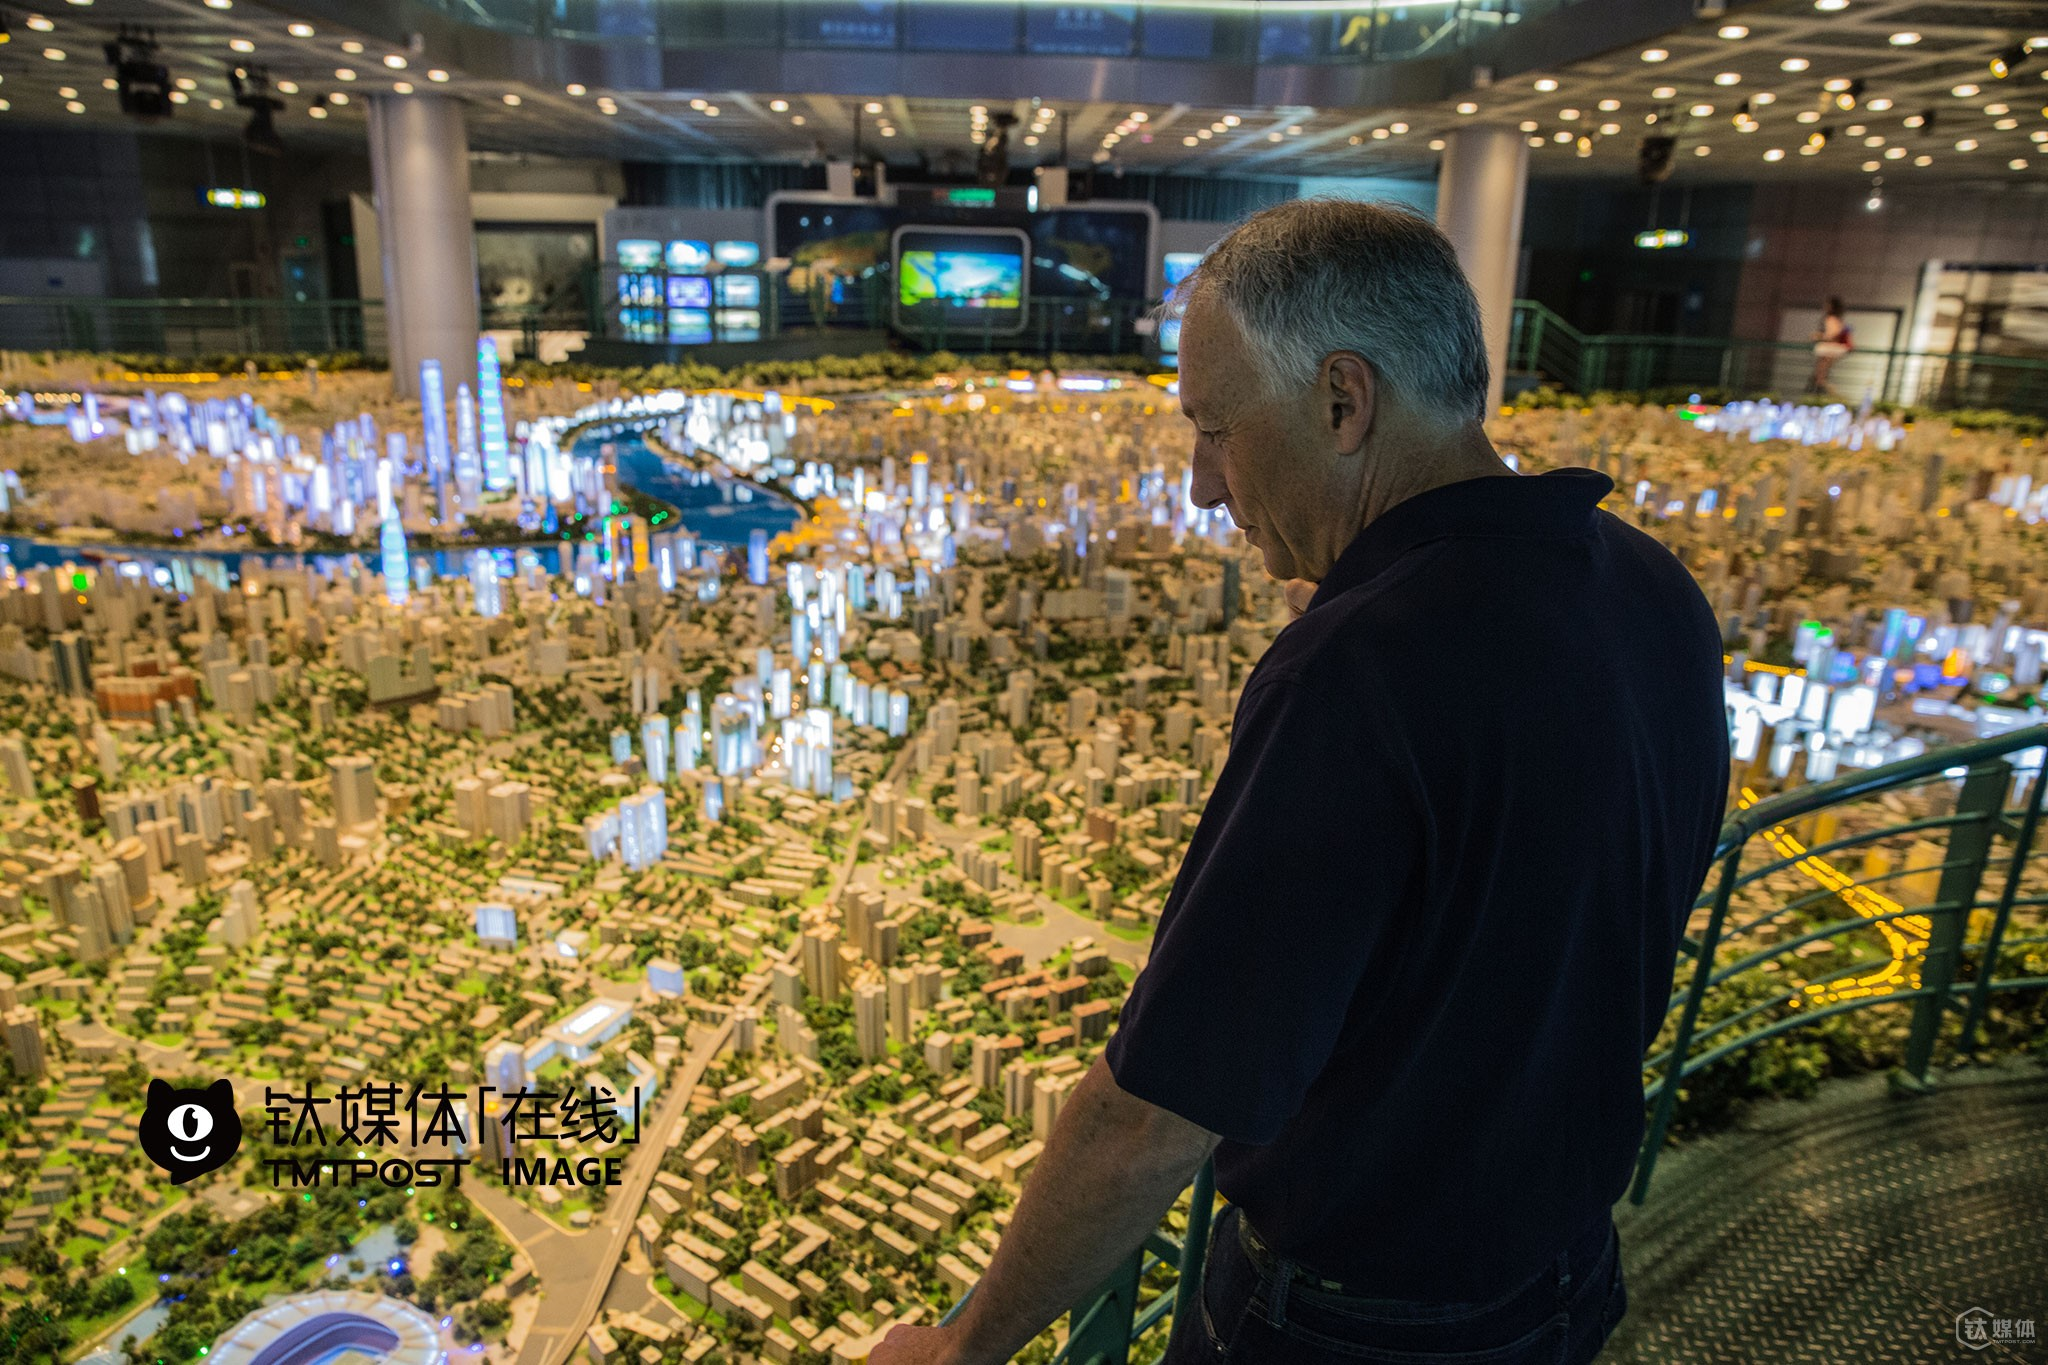 """Michael, vice mayor of Atherton, was shocked at the city model of Shanghai. """"This city model is so huge! We also have a city model for Michael Lempres, but it's much smaller than this one,"""" he said, """"Atherton lies right in the center of Silicon Valley, and the house price here is the highest in the US."""" There are no tech company but lots of residential houses in Atherton. As a matter of fact, Atherton is the most favorable place to live in for many CEOs of giant tech companies as well as investors in Silicon Valley."""